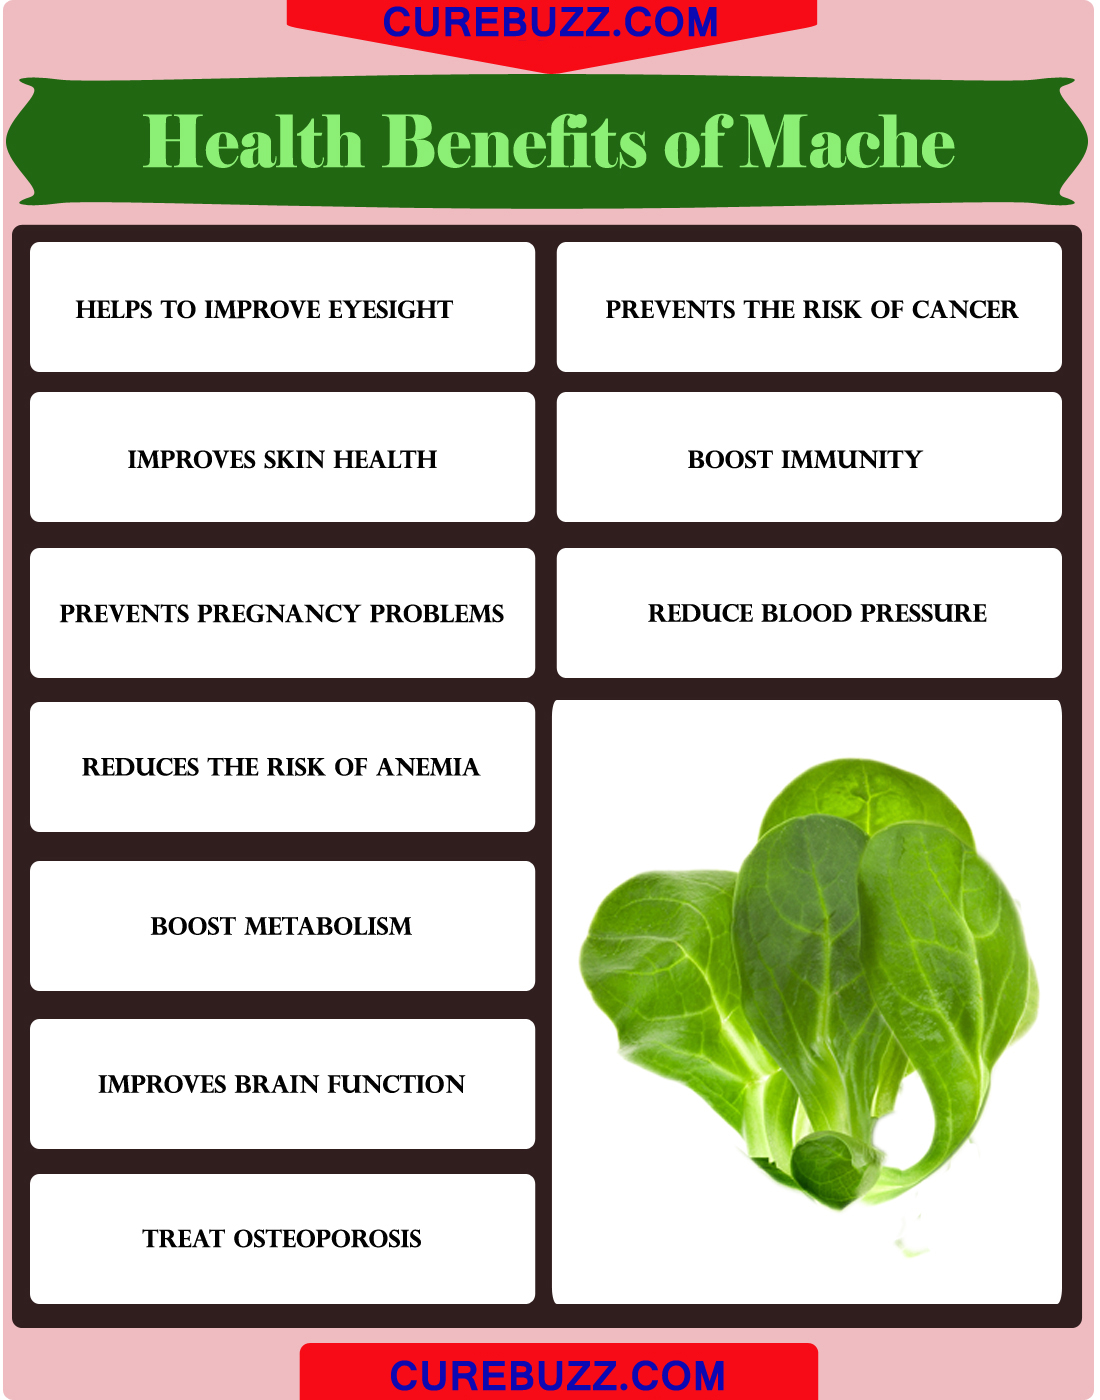 Health Benefits of Mache